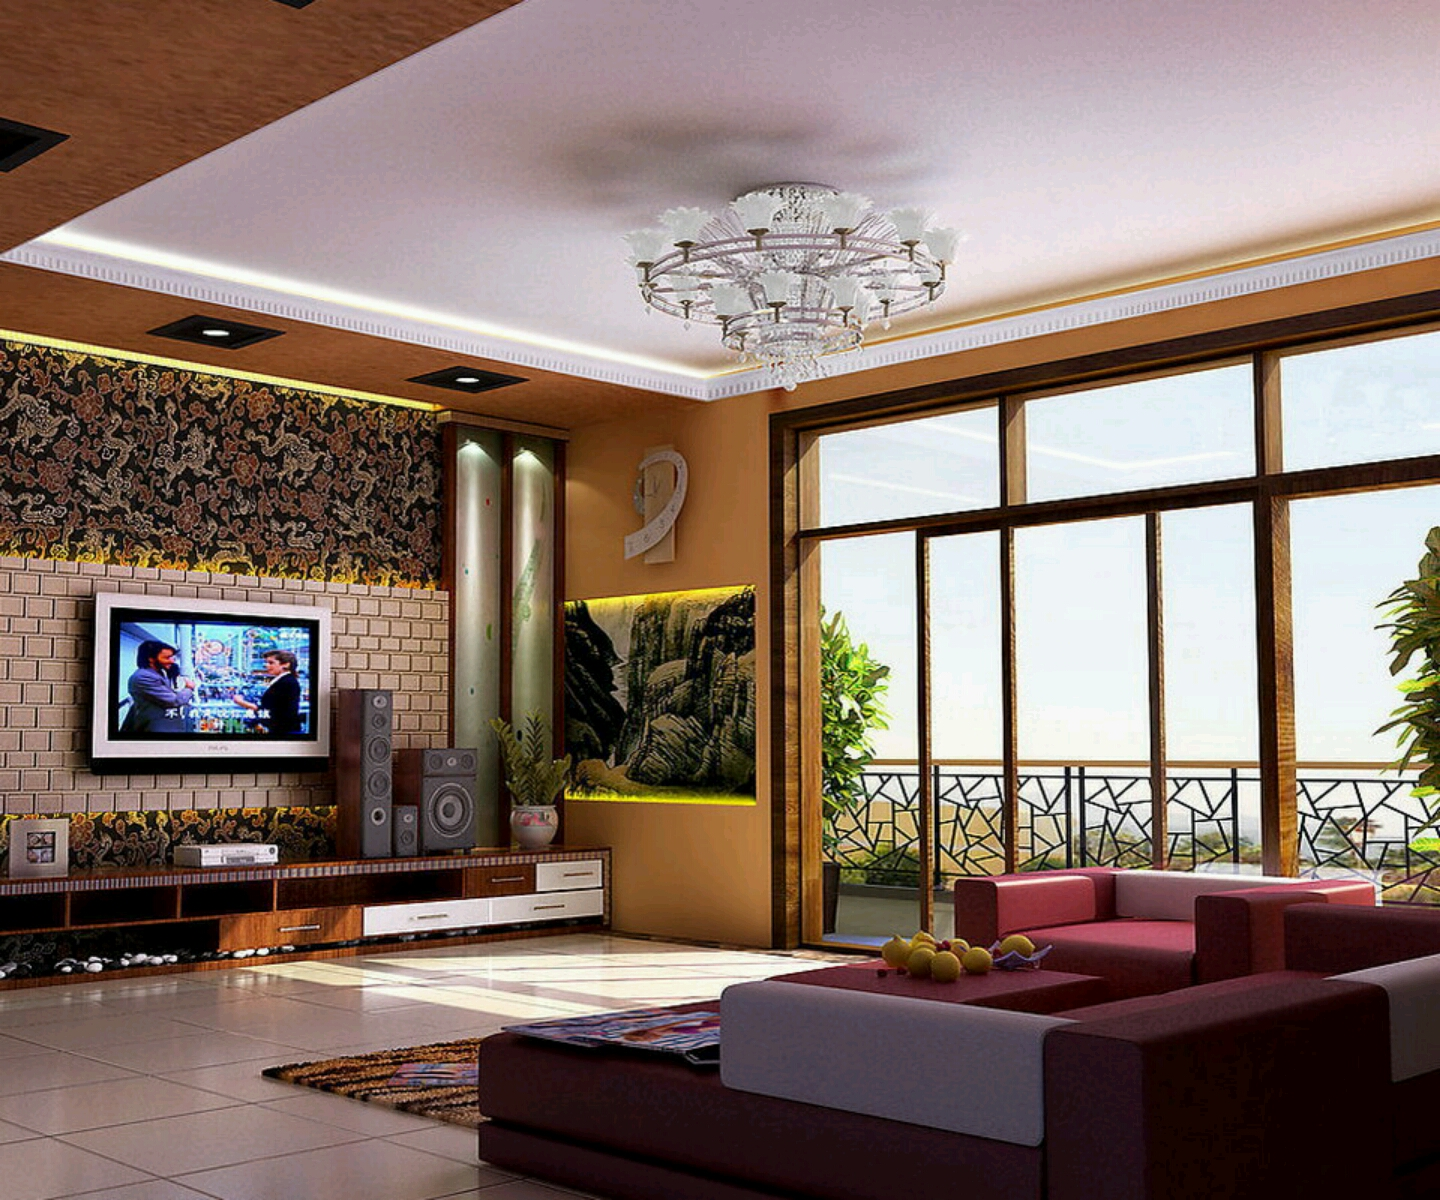 New home designs latest modern living room designs ideas for Modern designs for living room ideas